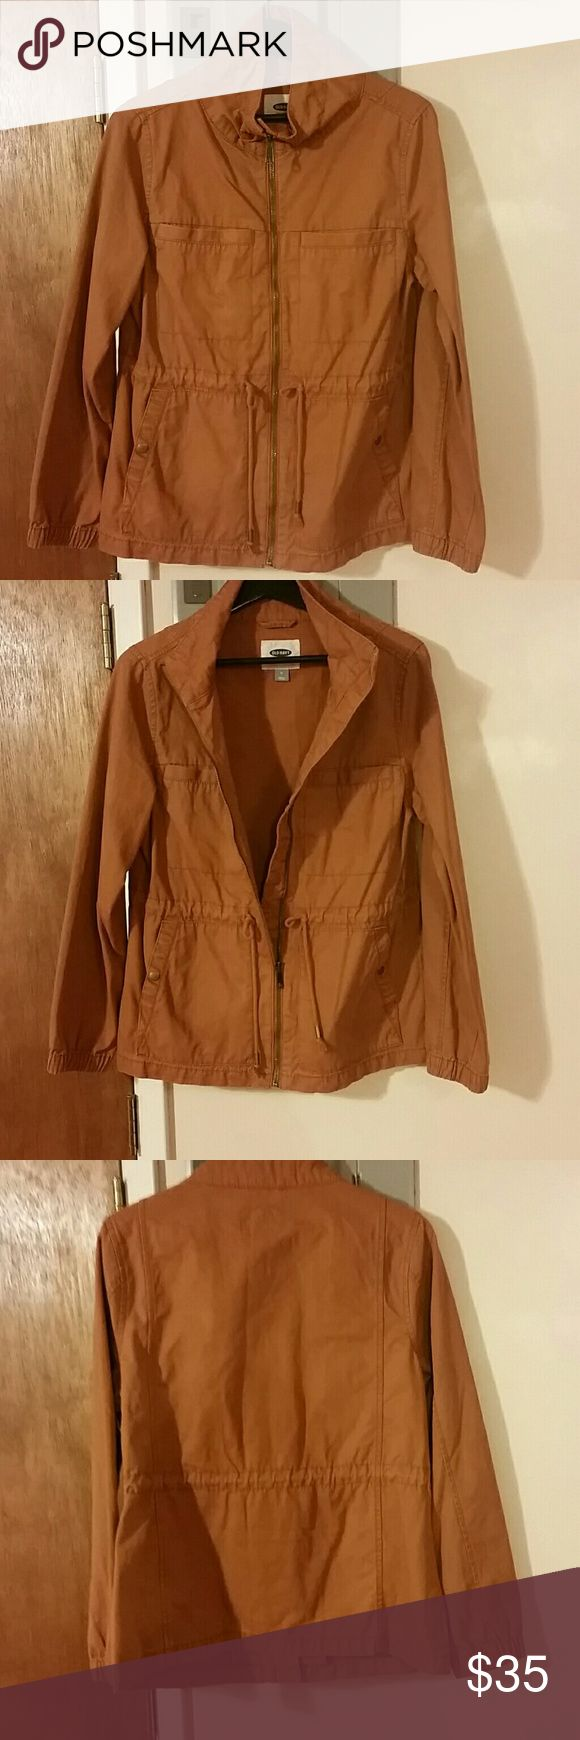 OLD NAVY utility jacket Worn once to run to the store, this jacket will no longer serve me as winter is upon us in NY. The jacket is in perfect condition. It's a beautiful rust, pumpkin color. It has adjustable cords at the waist, zipper down the front and stretch cuffs. There are two open pockets at the chest, deep enough for cell phone, keys, etc. There are two snap closure pockets on the bottom (front) for securing other items. This jacket is 100% cotton and machine washable. Old Navy…